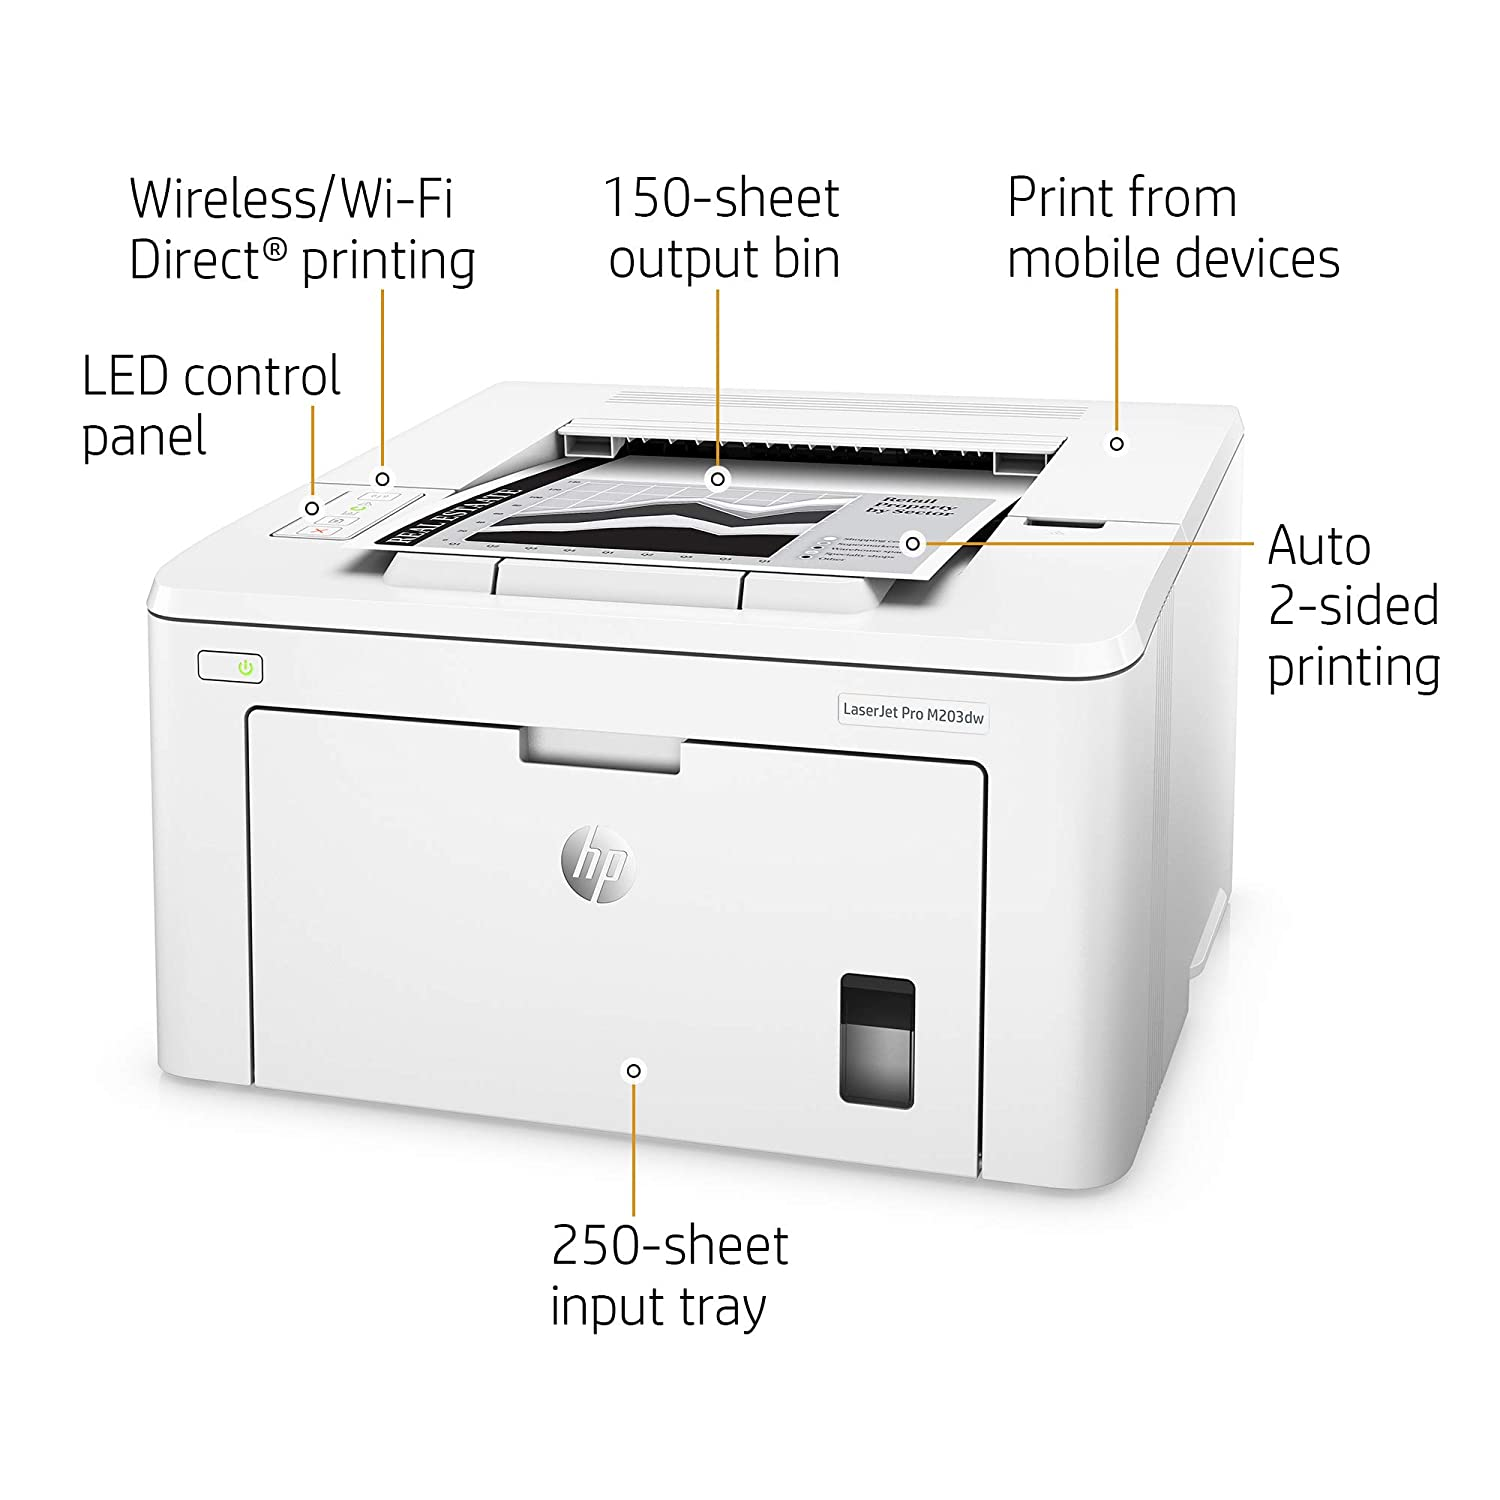 HP LaserJet Pro M203dw Wireless Laser Printer, Amazon Dash Replenishment  ready (G3Q47A)  Replaces HP M201dw Laser Printer